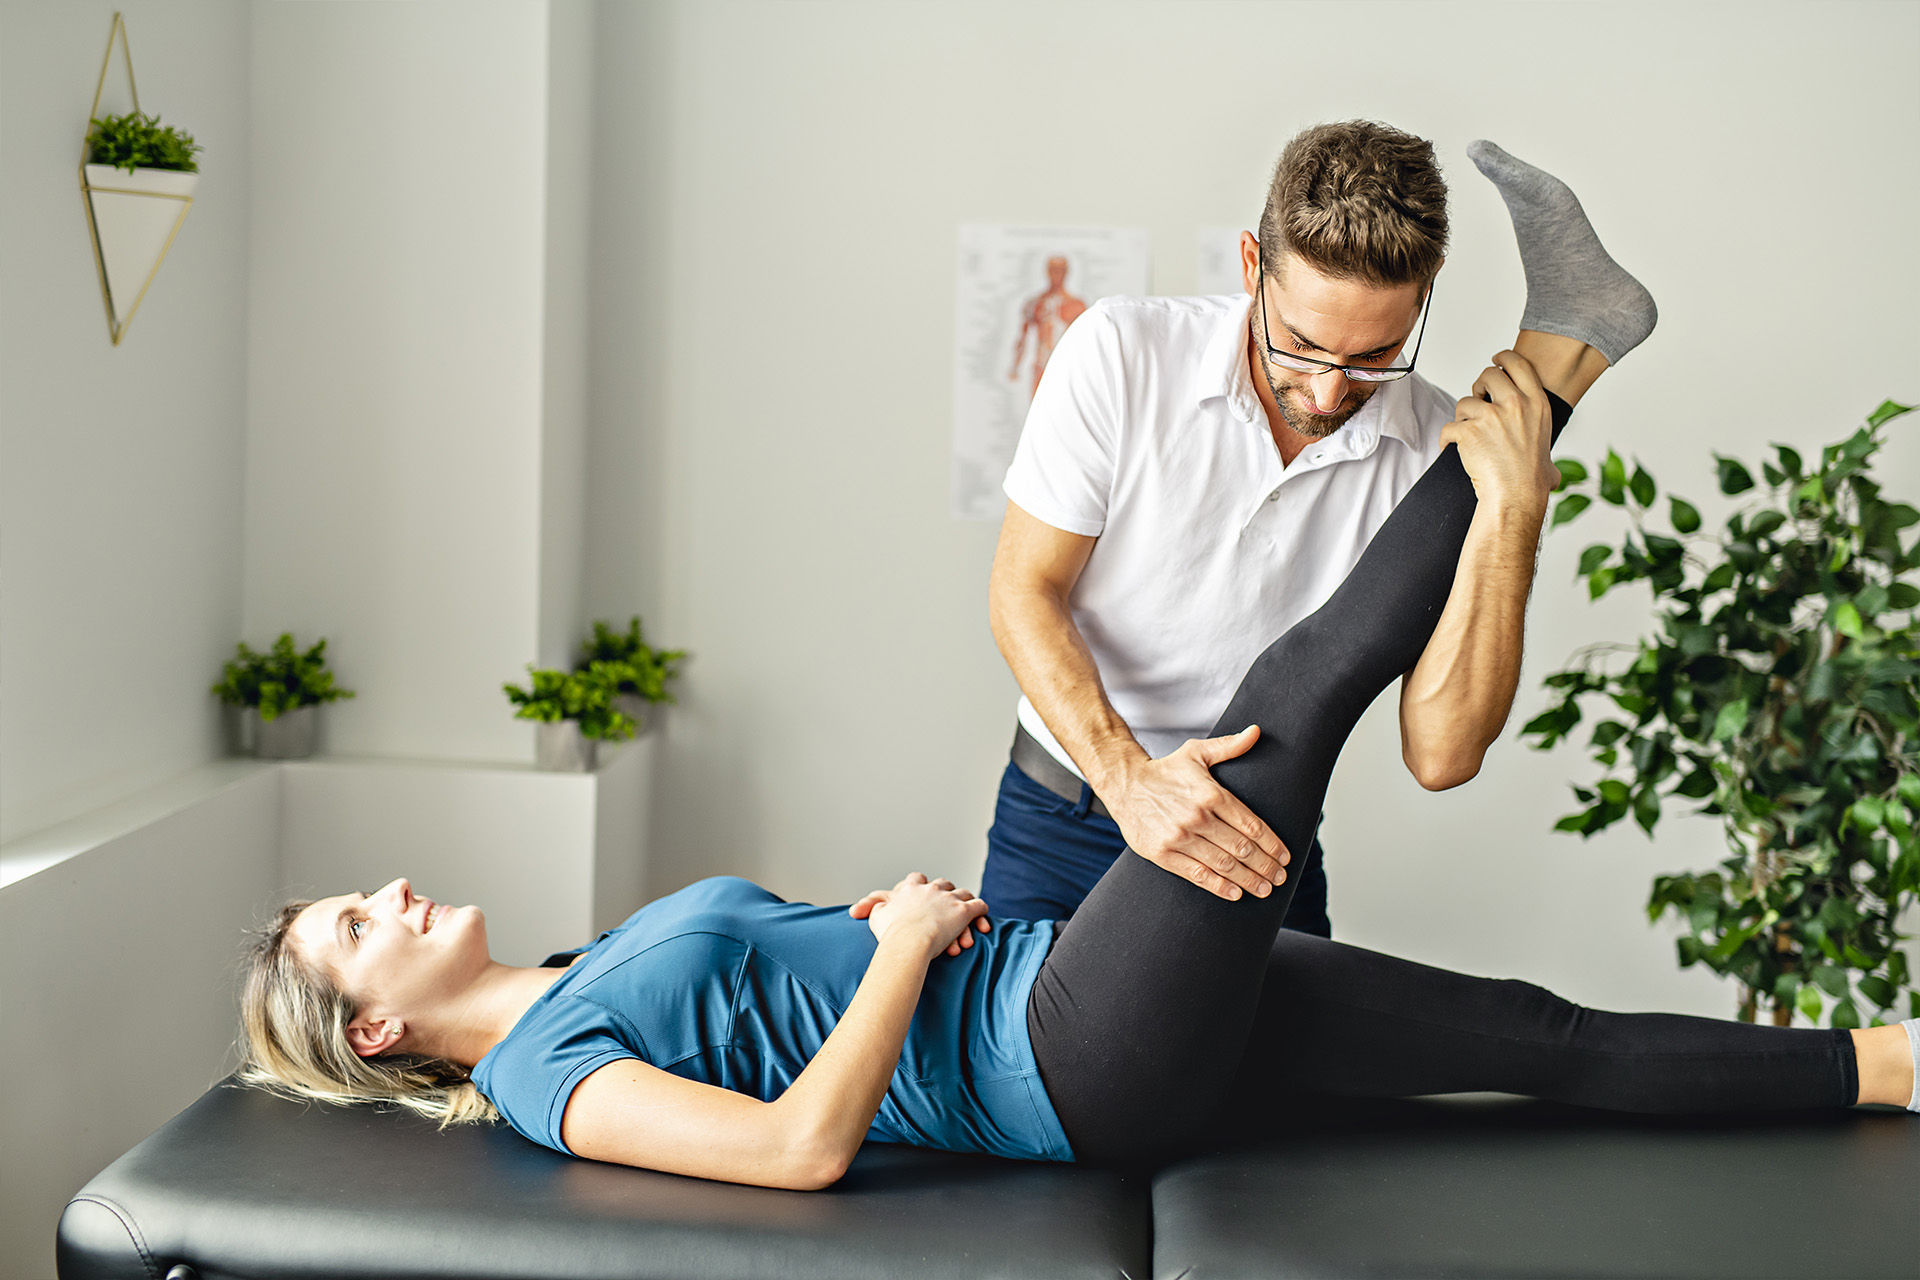 Image: male physical therapist rotates and stretches female patient's leg